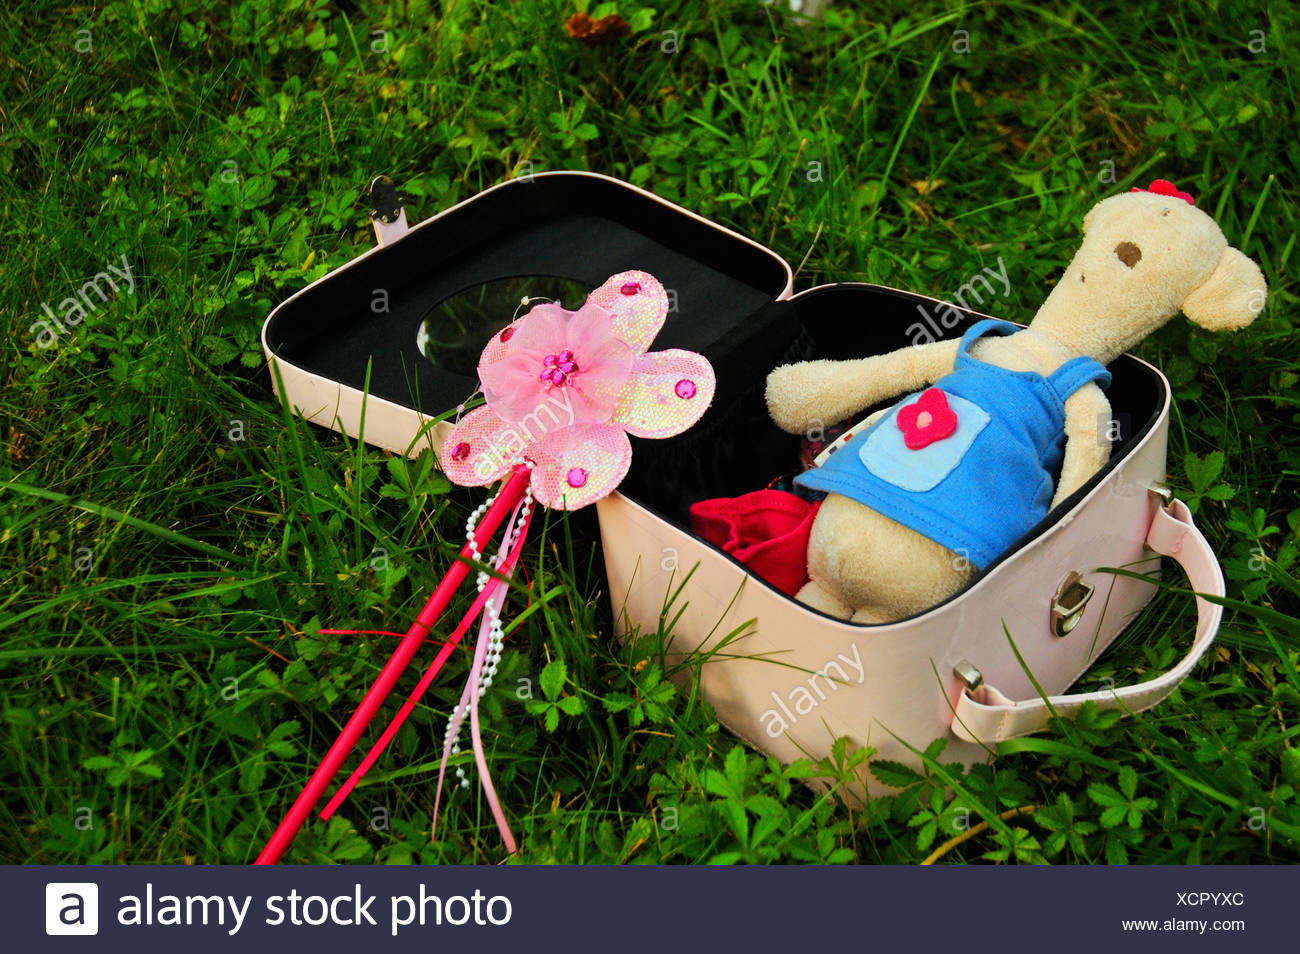 Suitcase with teddy bear and wand Stock Photo